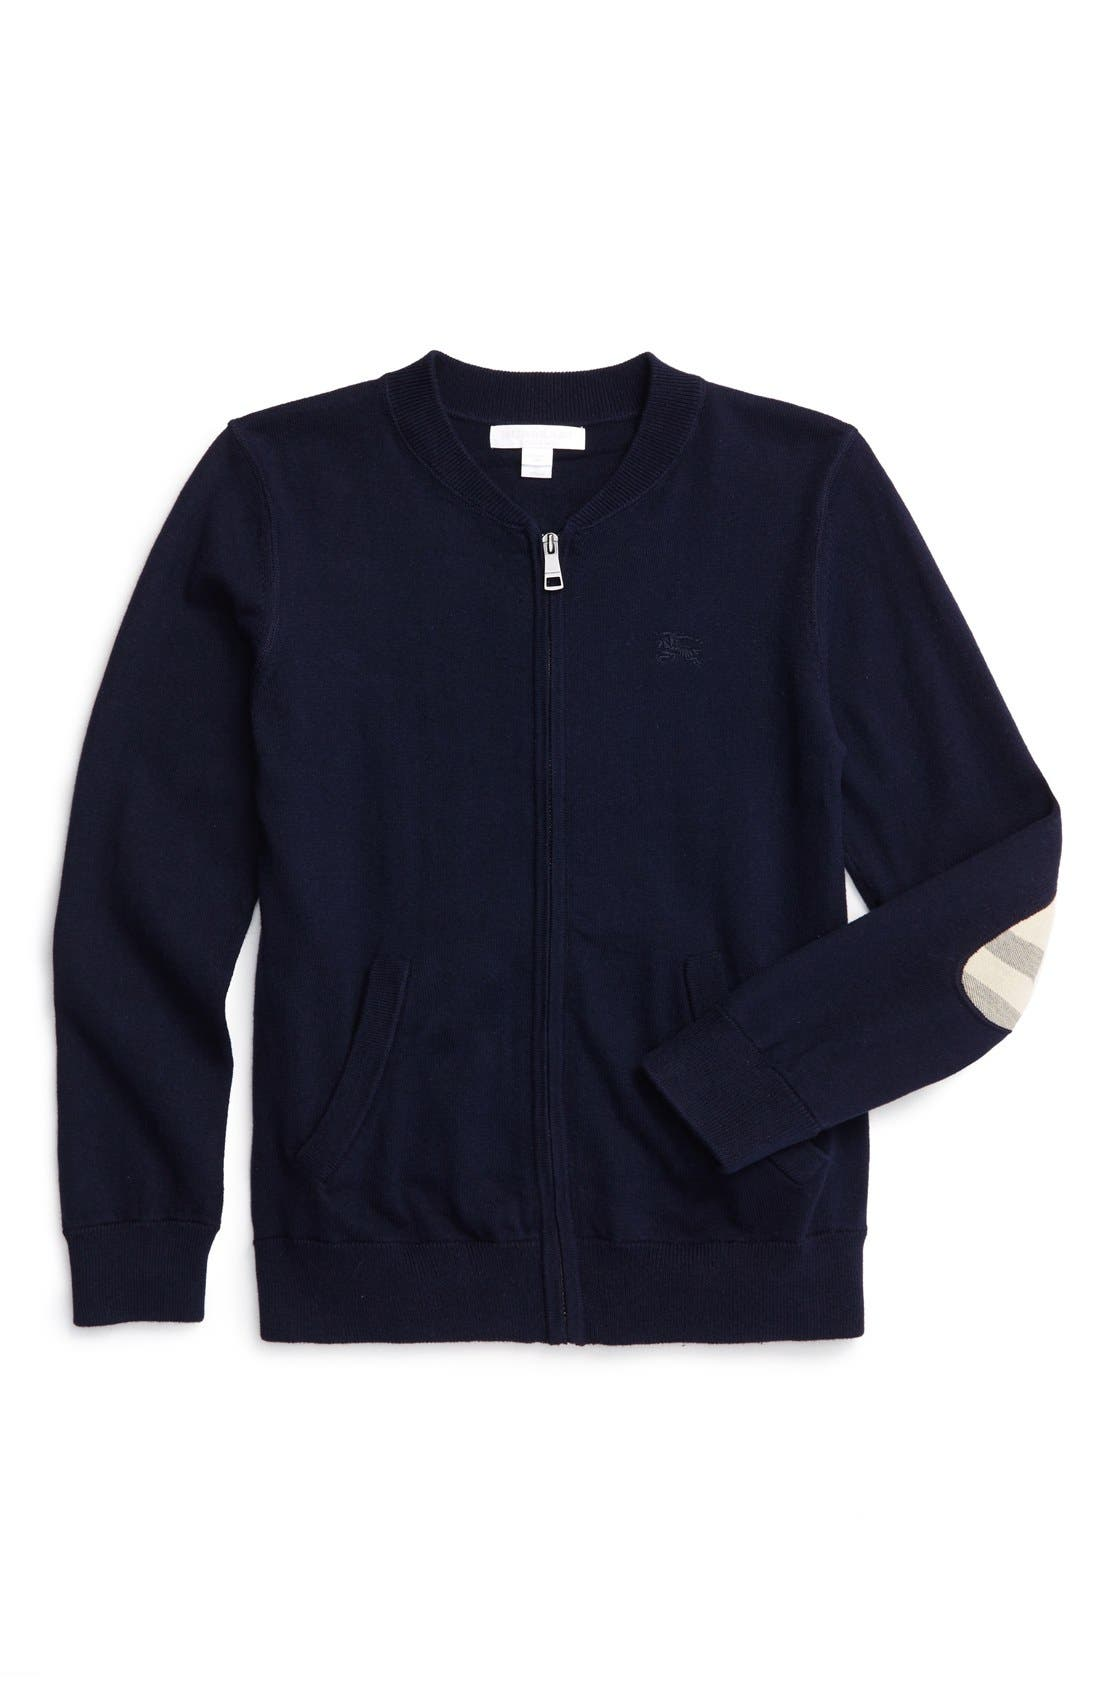 Alternate Image 1 Selected - Burberry 'Jaxson' Front Zip Cotton Cardigan (Little Boys & Big Boys)